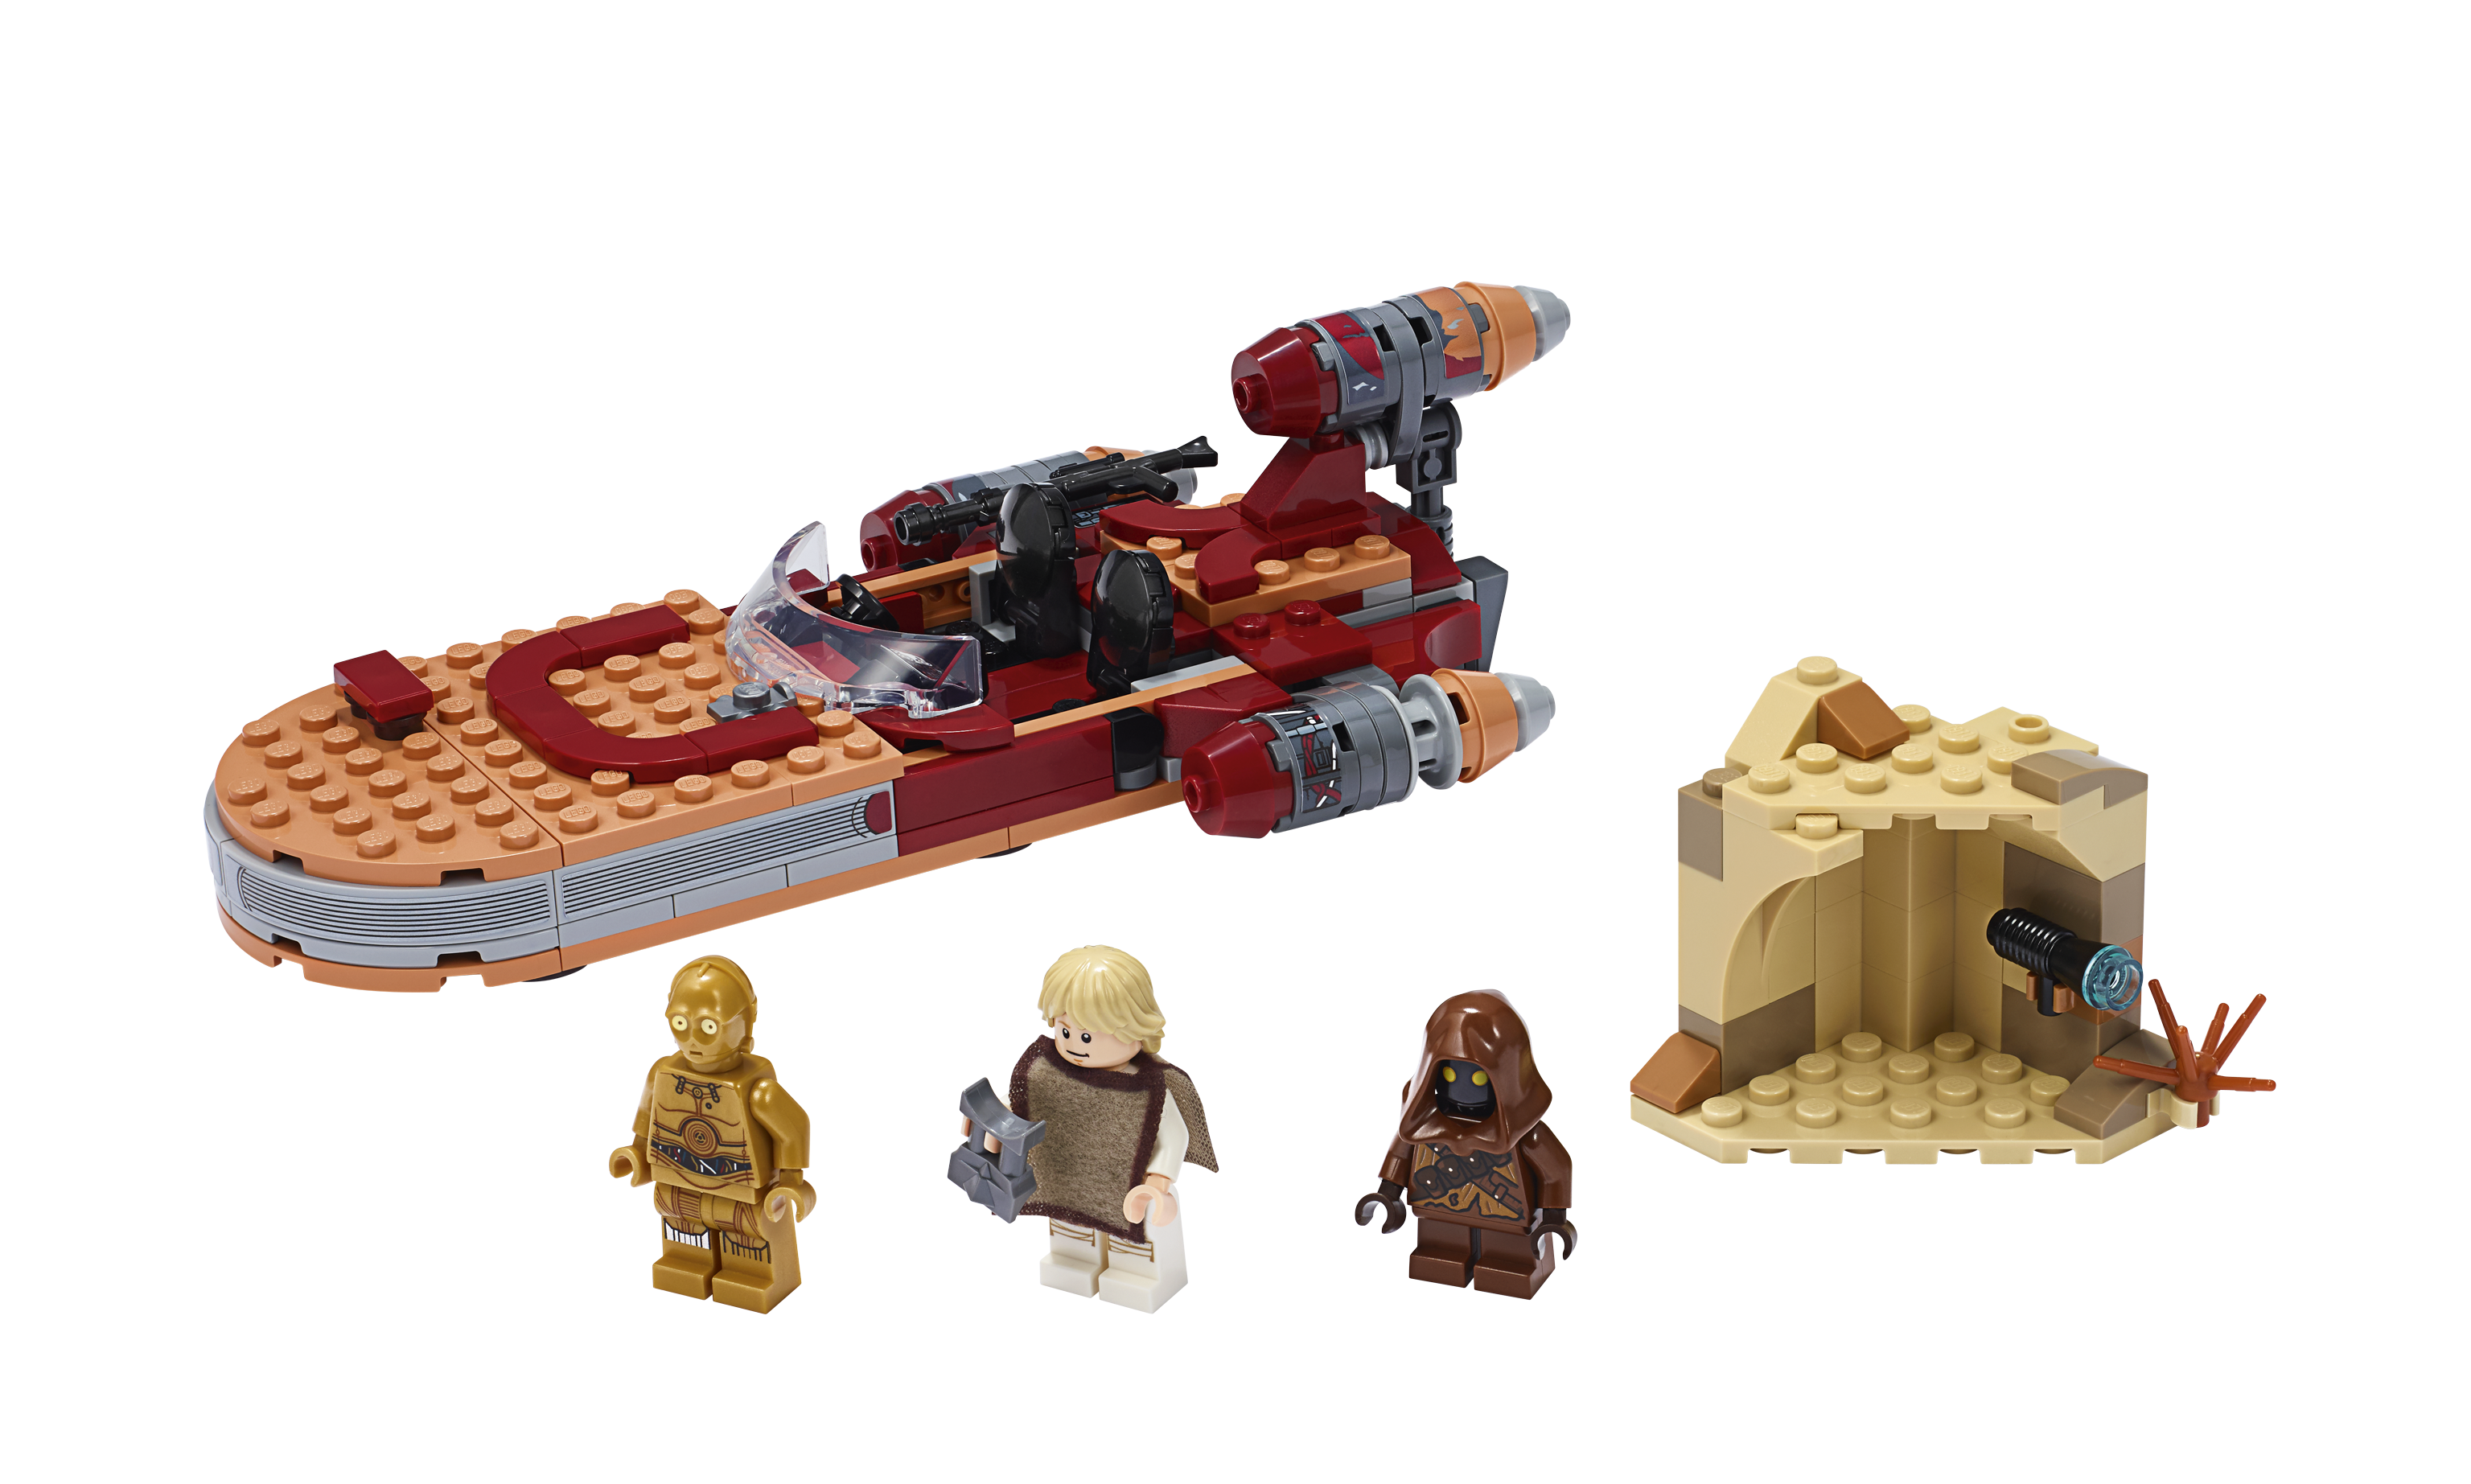 Lego January 2020 Calendar Two New 2020 LEGO Star Wars Sets Revealed   The Brick Fan